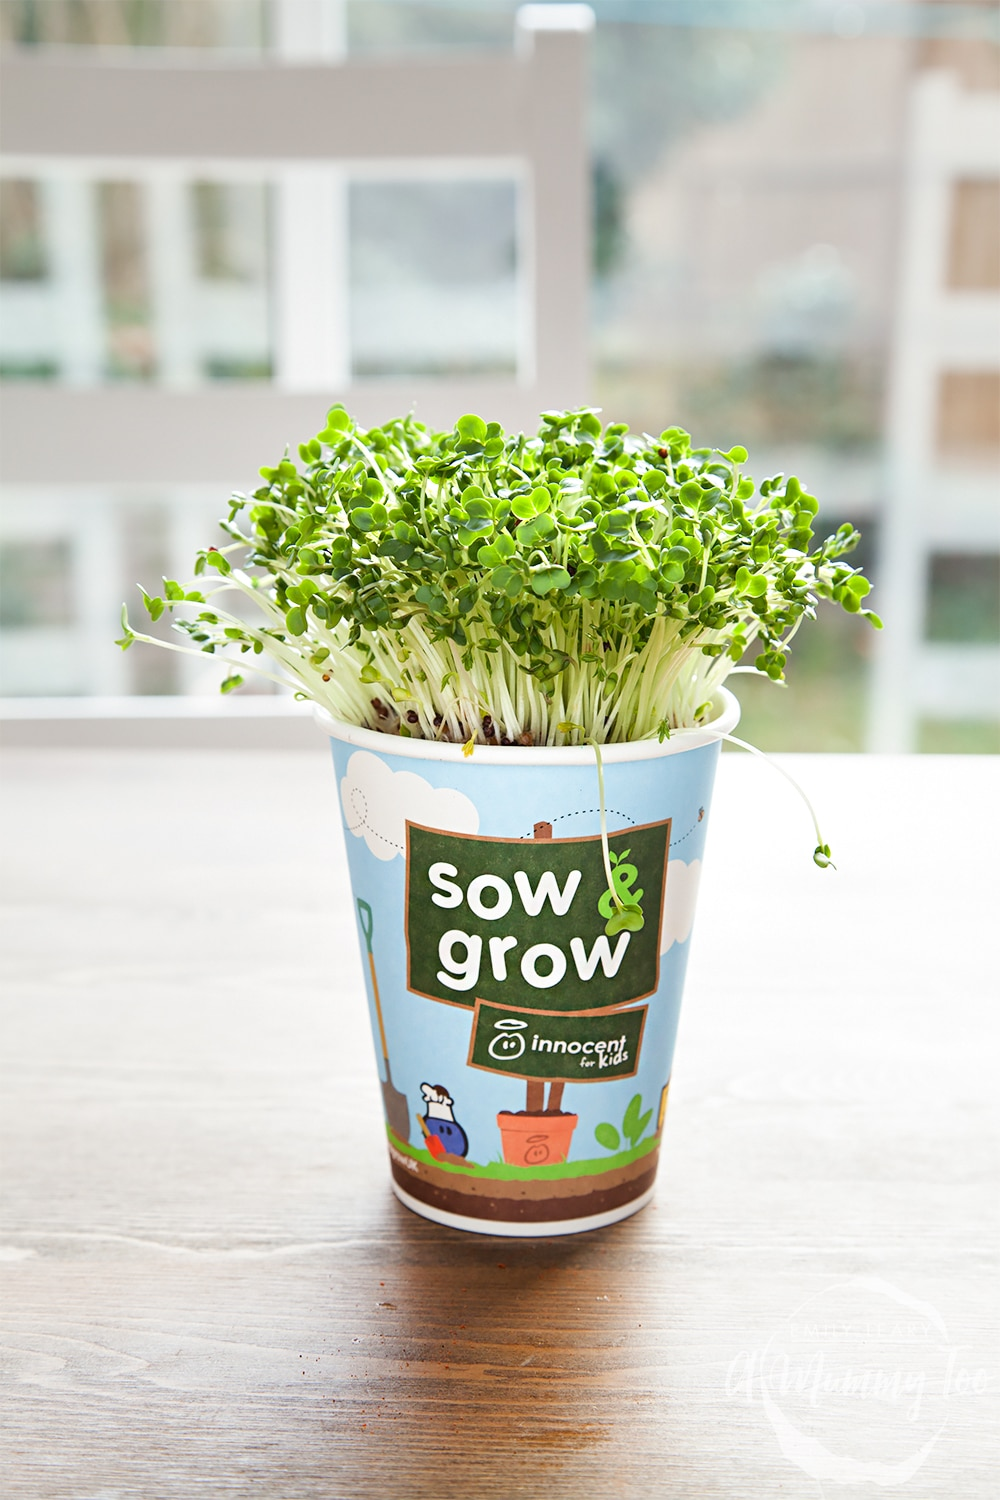 Home-grown cress in an innocent Sow & Grow pot